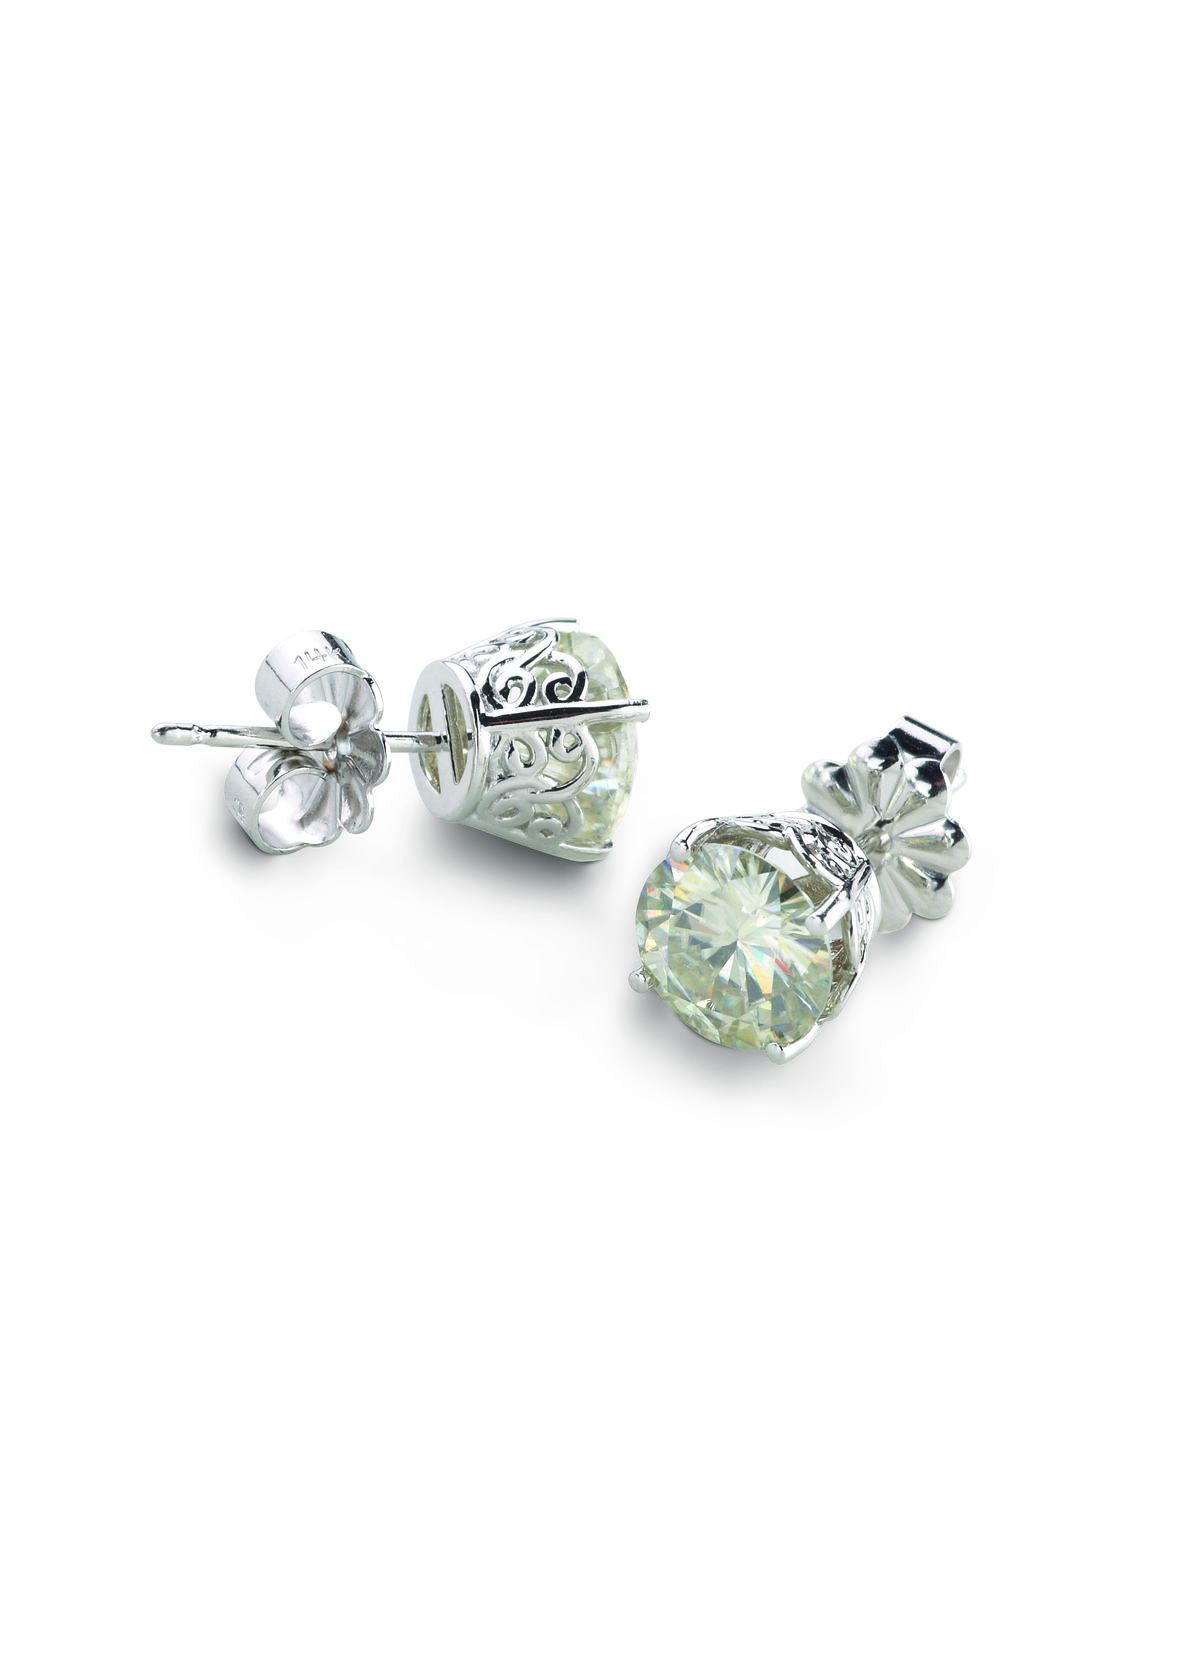 and colvard valentines diamond poshclassymom gift day moissanite ideas charles studs stud earrings